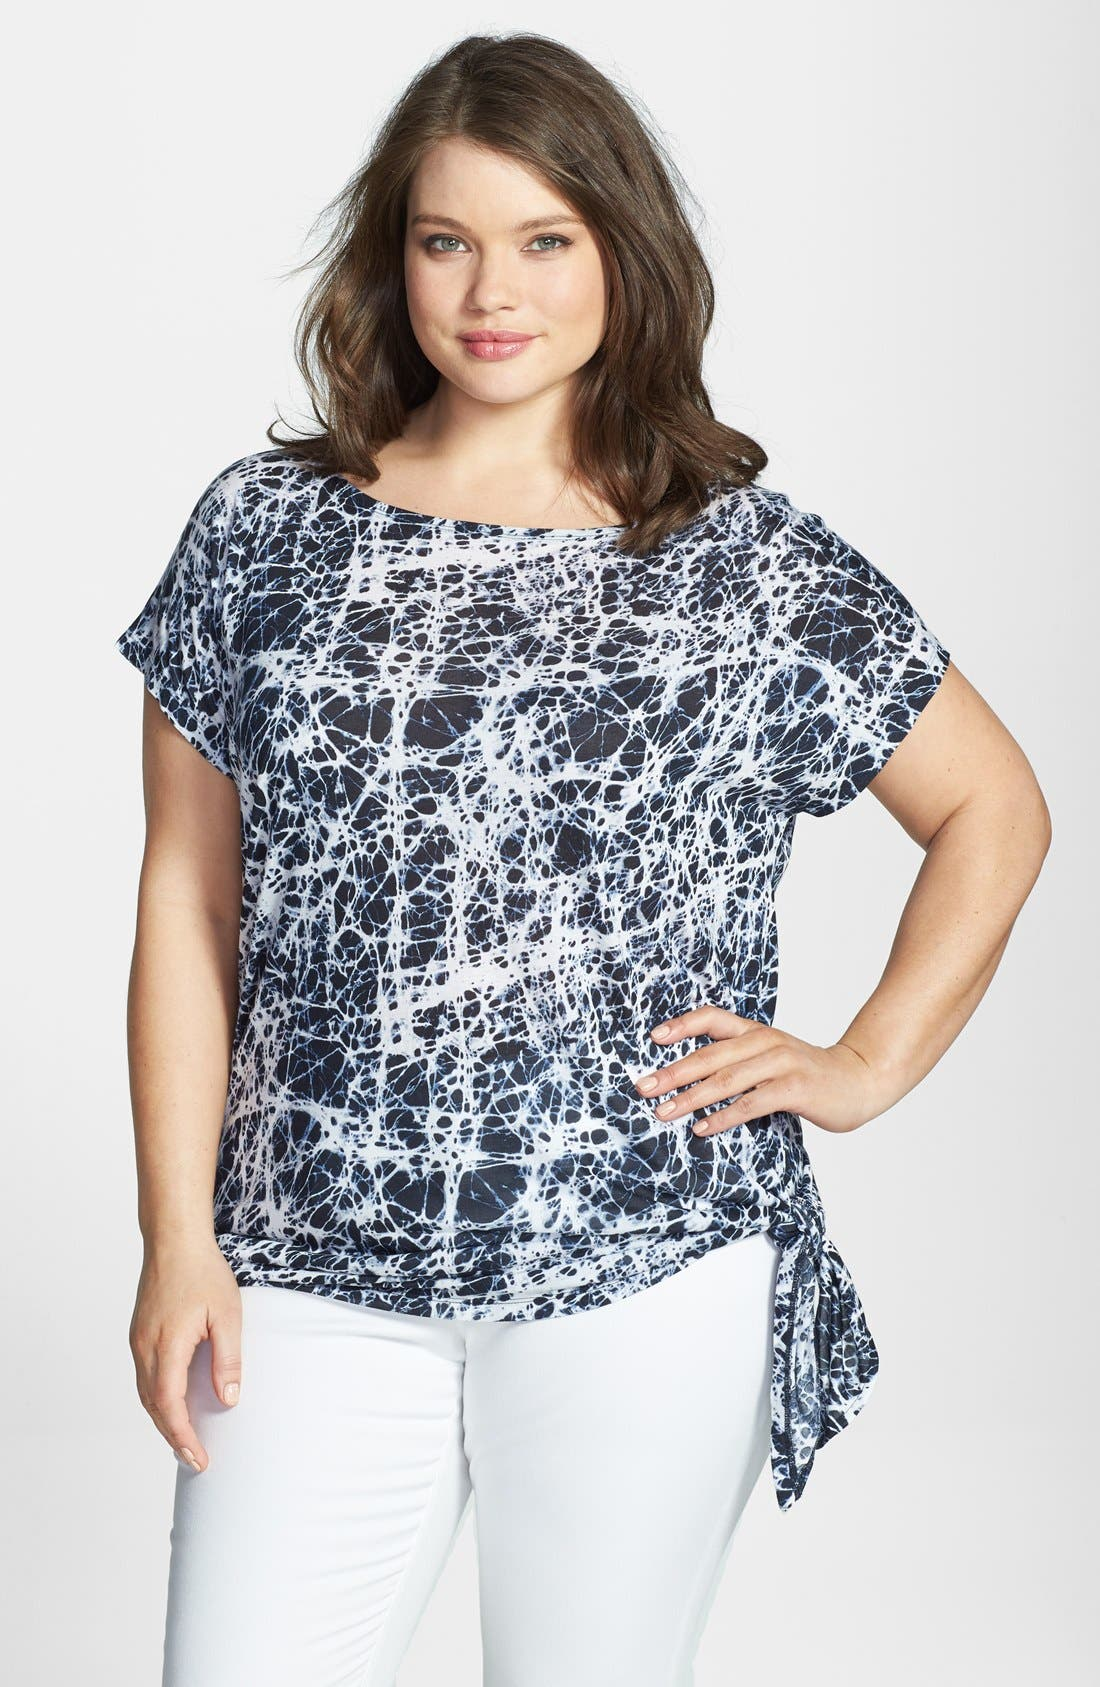 Alternate Image 1 Selected - MICHAEL Michael Kors Print Flutter Sleeve Side Tie Top (Plus Size)